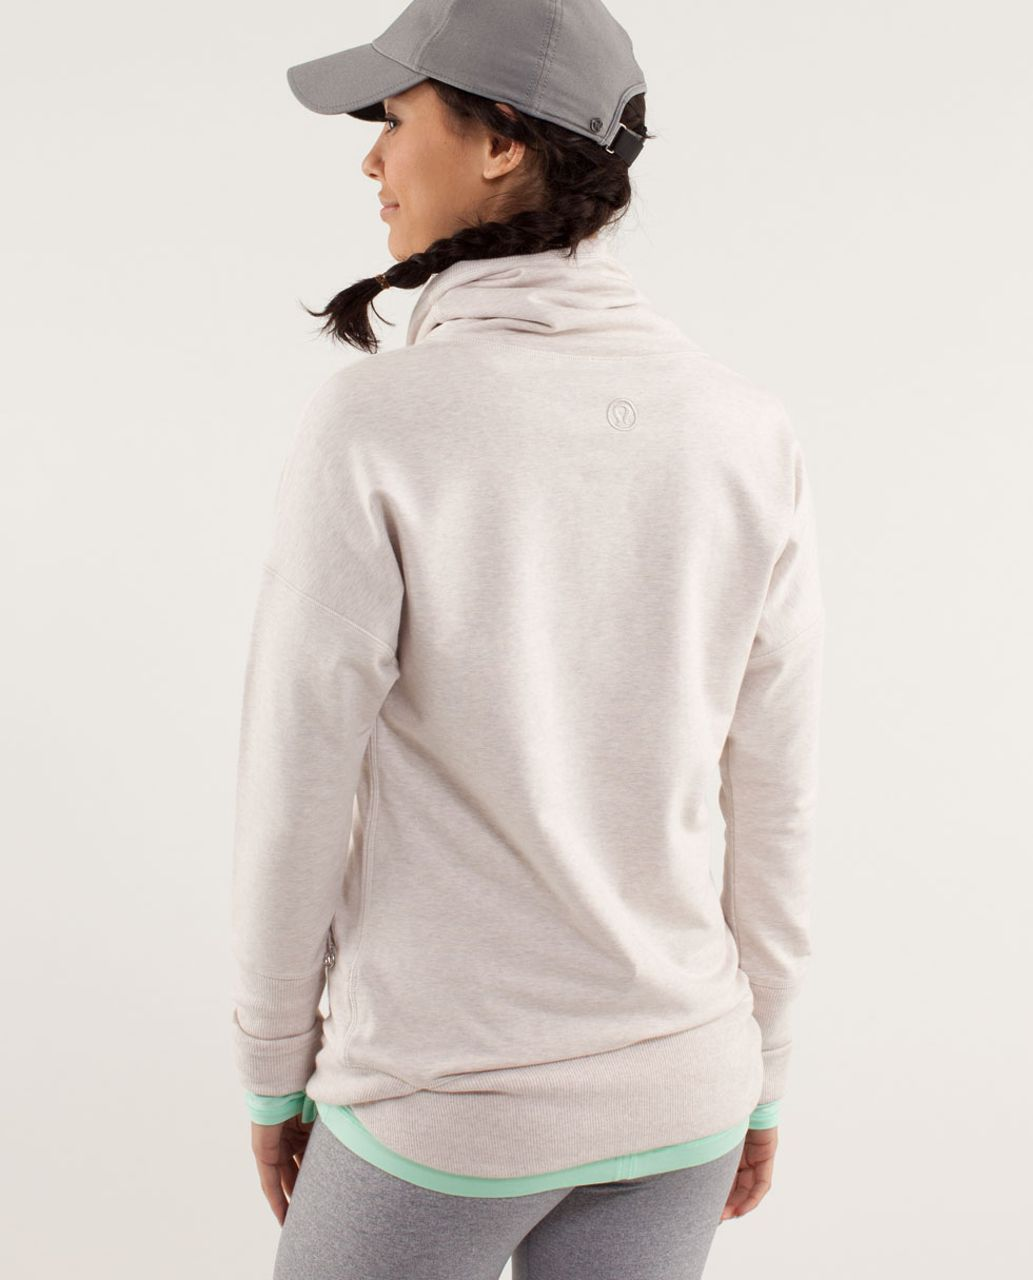 Lululemon Rest Day Pullover - Dune